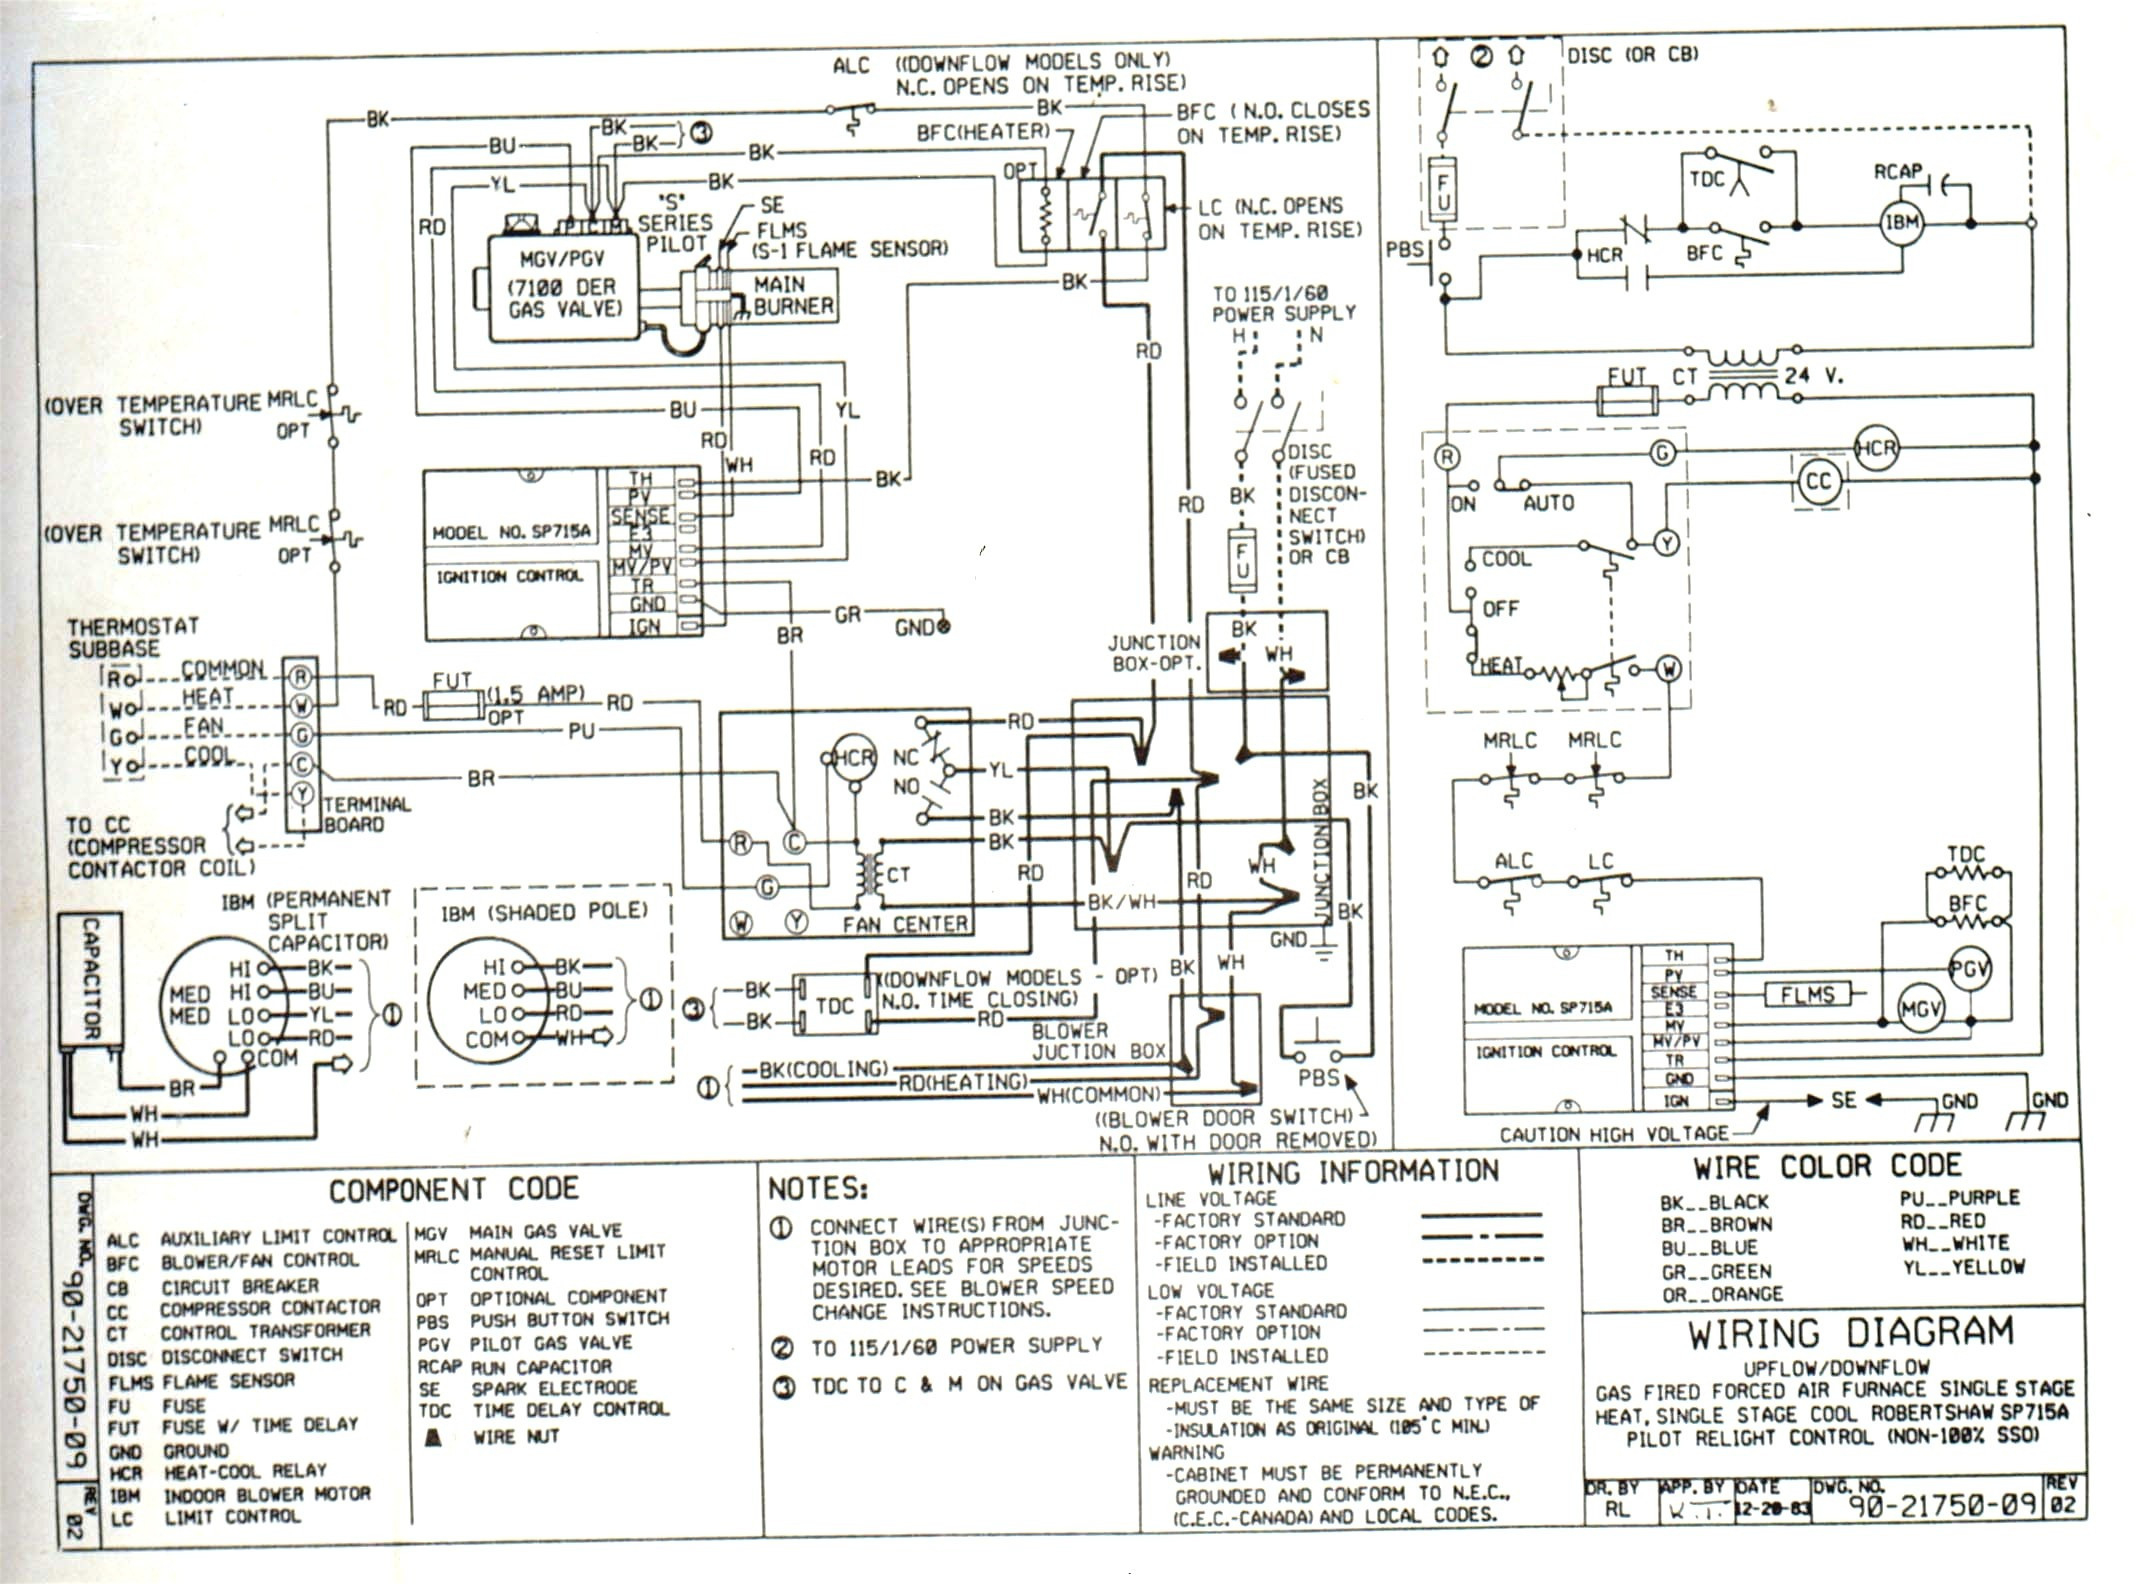 95fd5 Thermostat Wiring Diagram X1 Manual